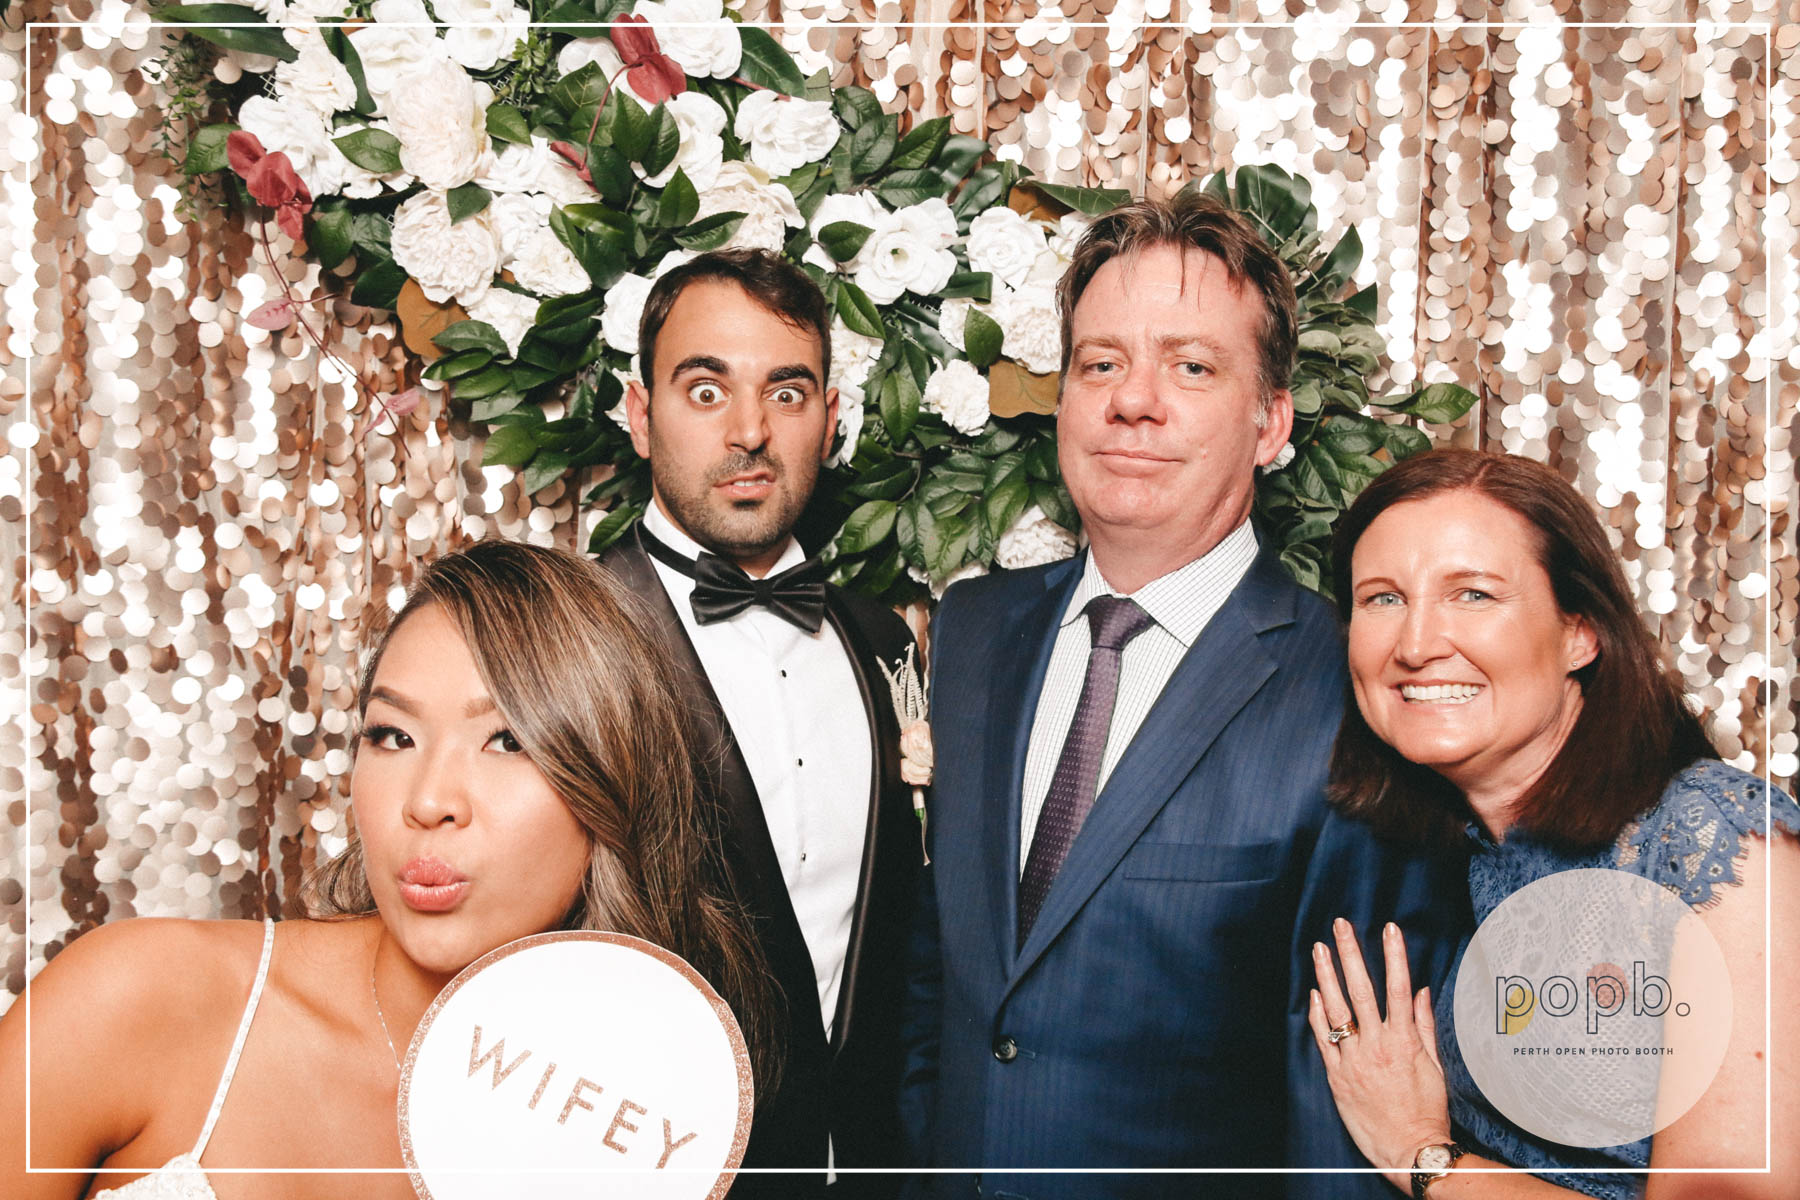 matthew + michelle's wedding - pASSWORD: PROVIDED ON THE night- ALL LOWERCASE -